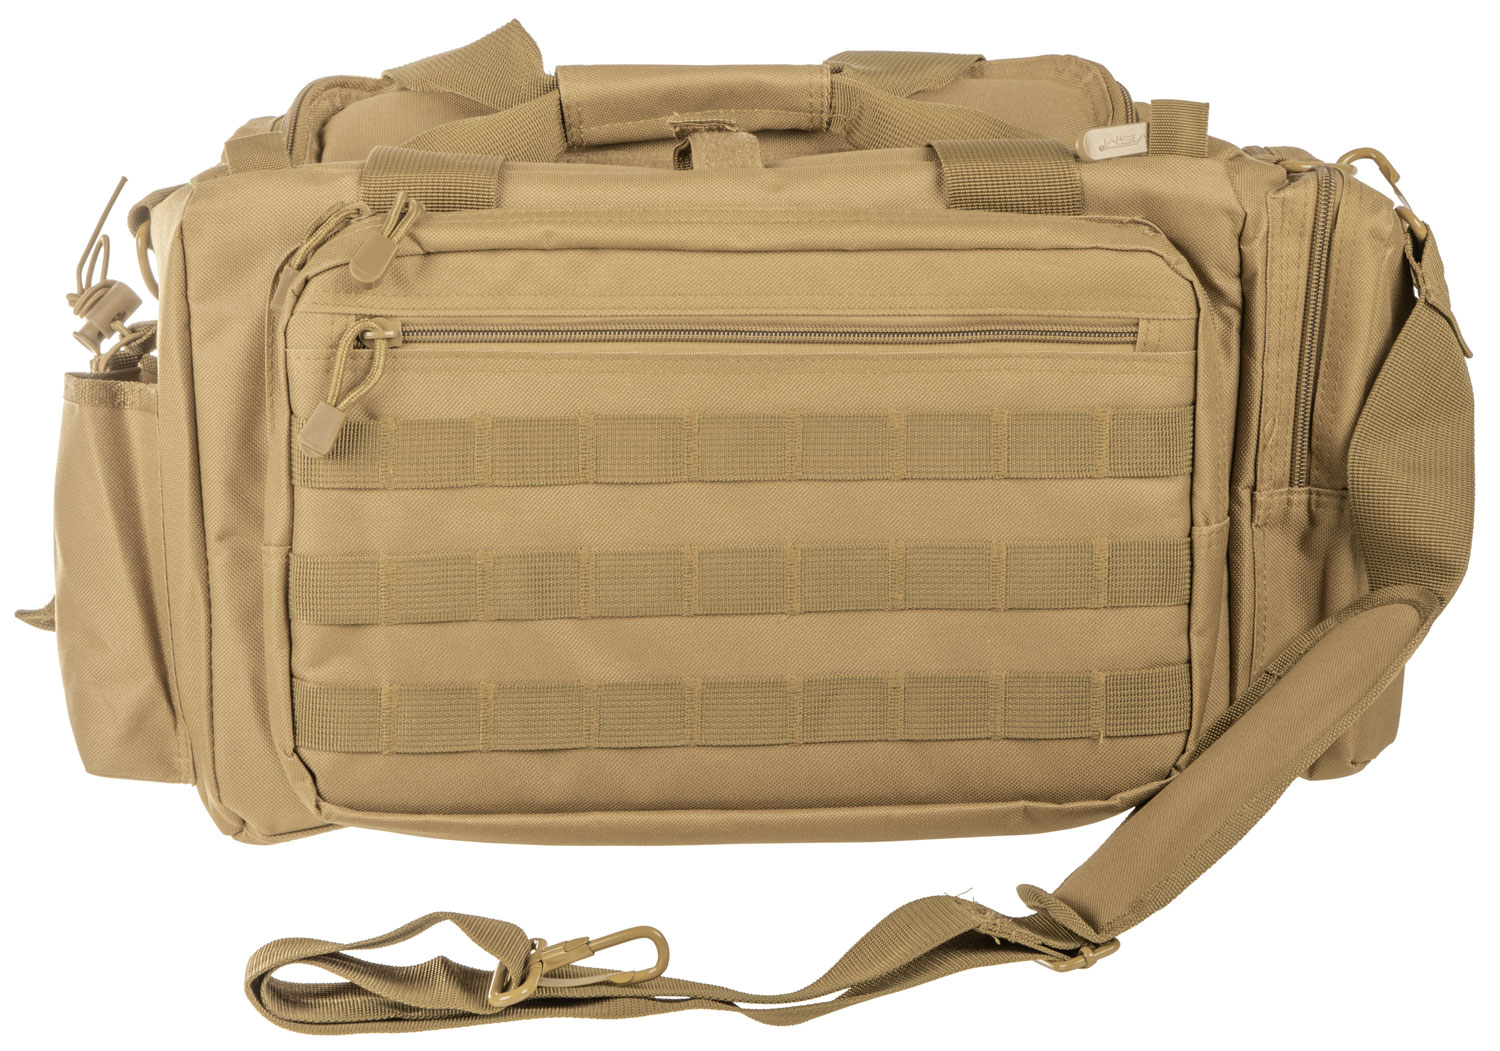 NCStar CVCRB2950T Competition Range Bag  Tan